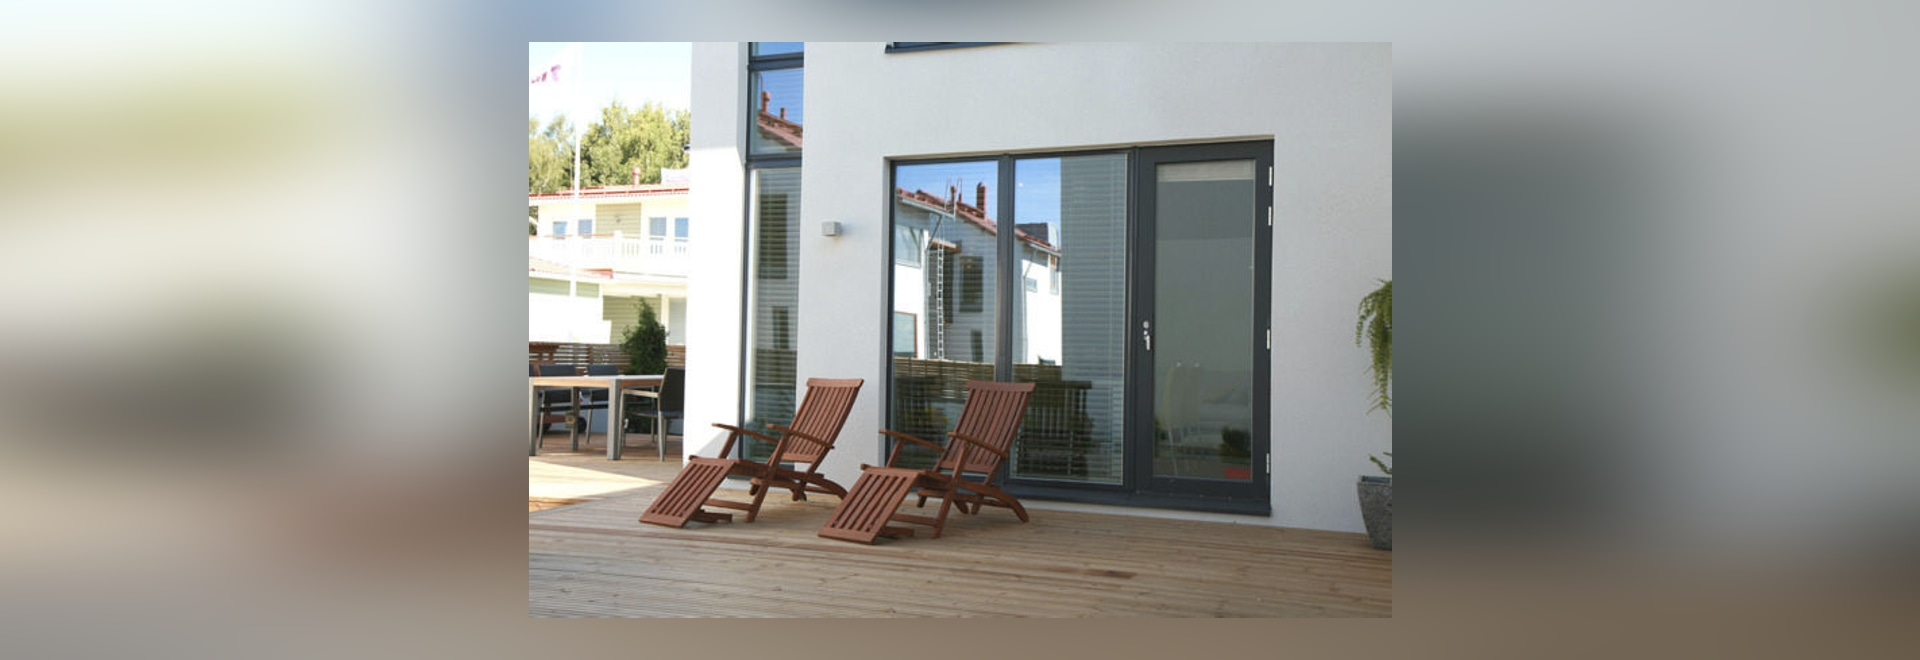 New Sliding Patio Door By Skaala Windows And Doors Skaala Windows